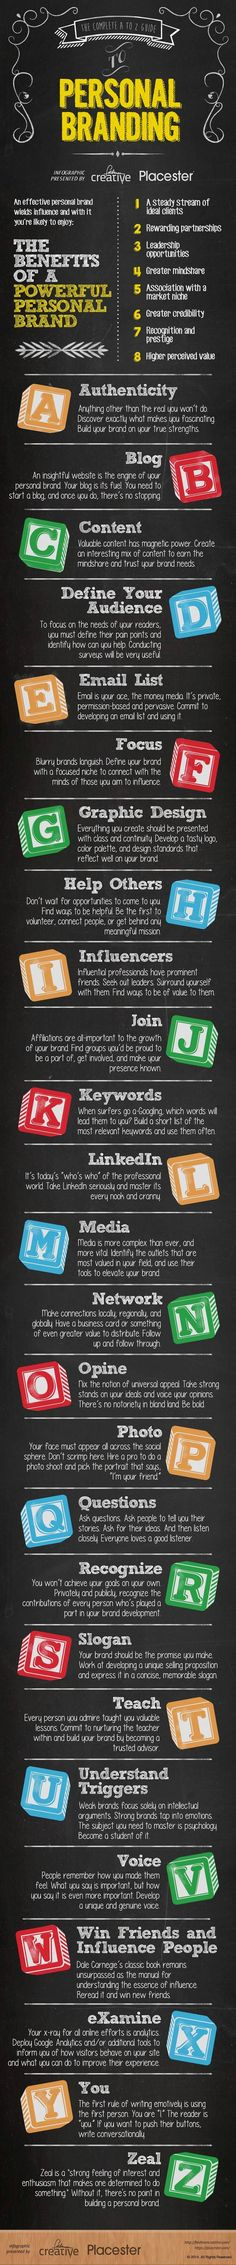 Career Management - The Complete A to Z Guide to Personal Branding #Infographic